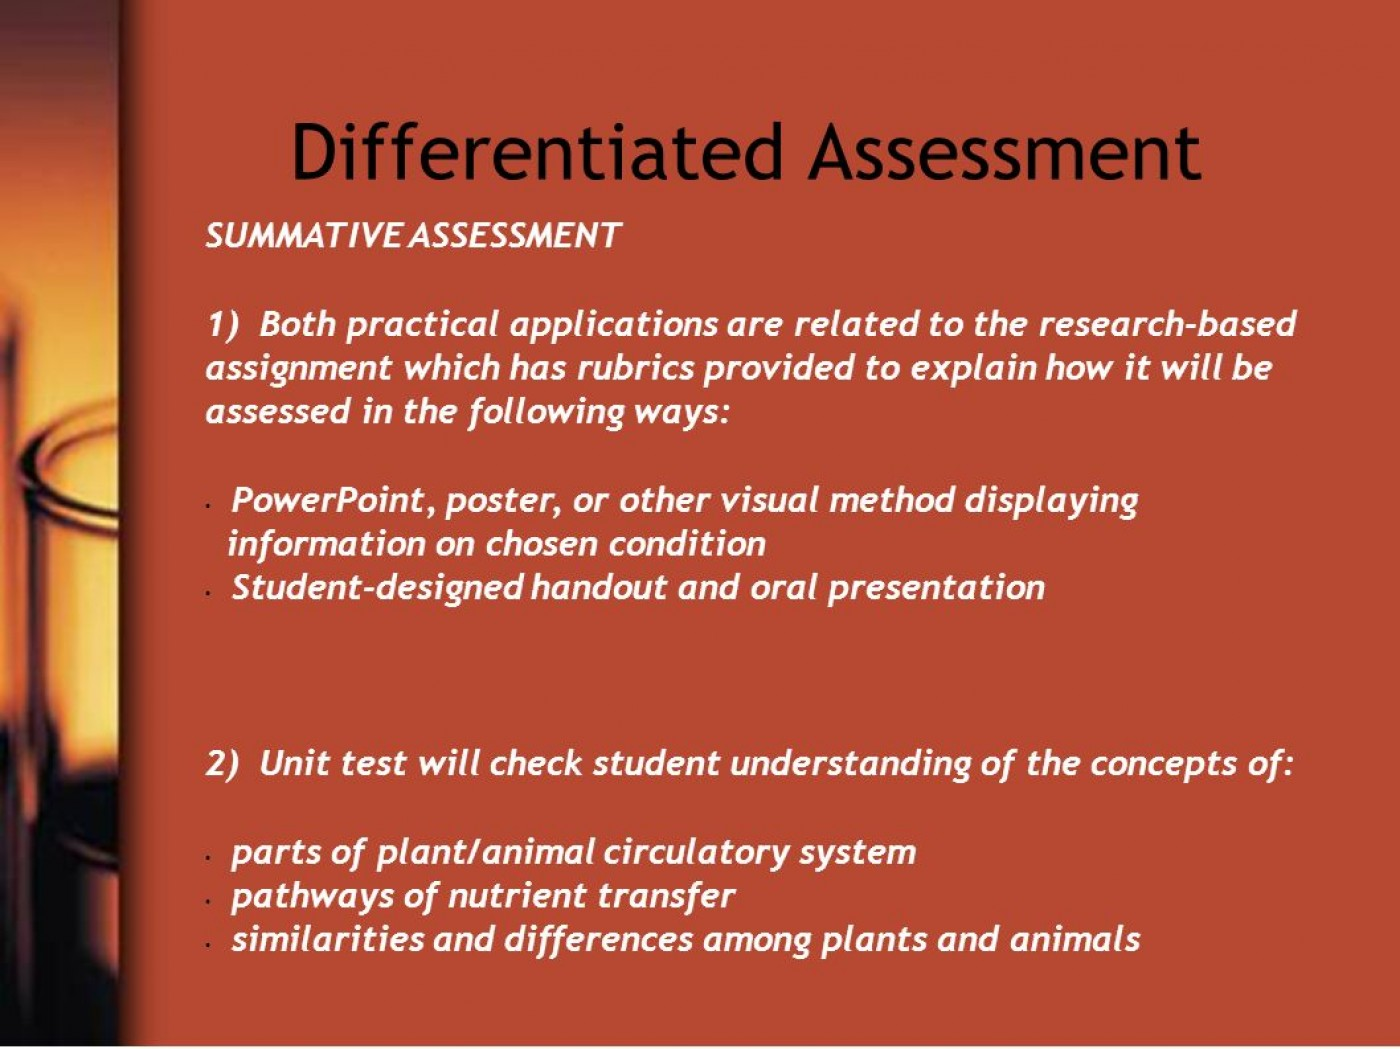 012 Research Paper Parts Of Ppt Slide 17 Best A Chapter 1 5 Qualitative 1400